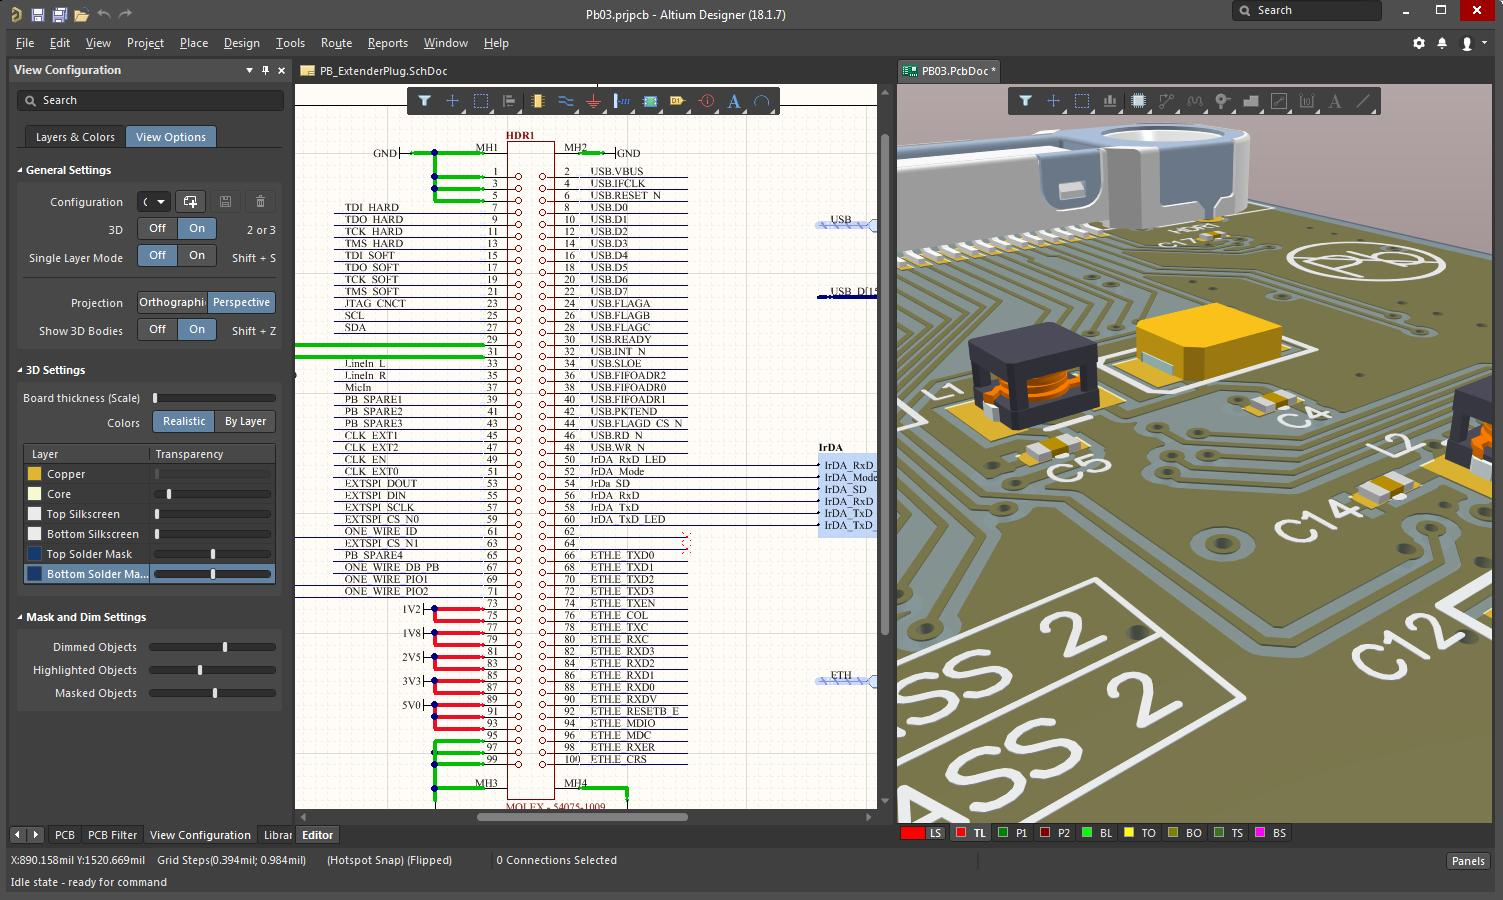 Screenshot of AD18 3D layout and schematic in PCB layout software